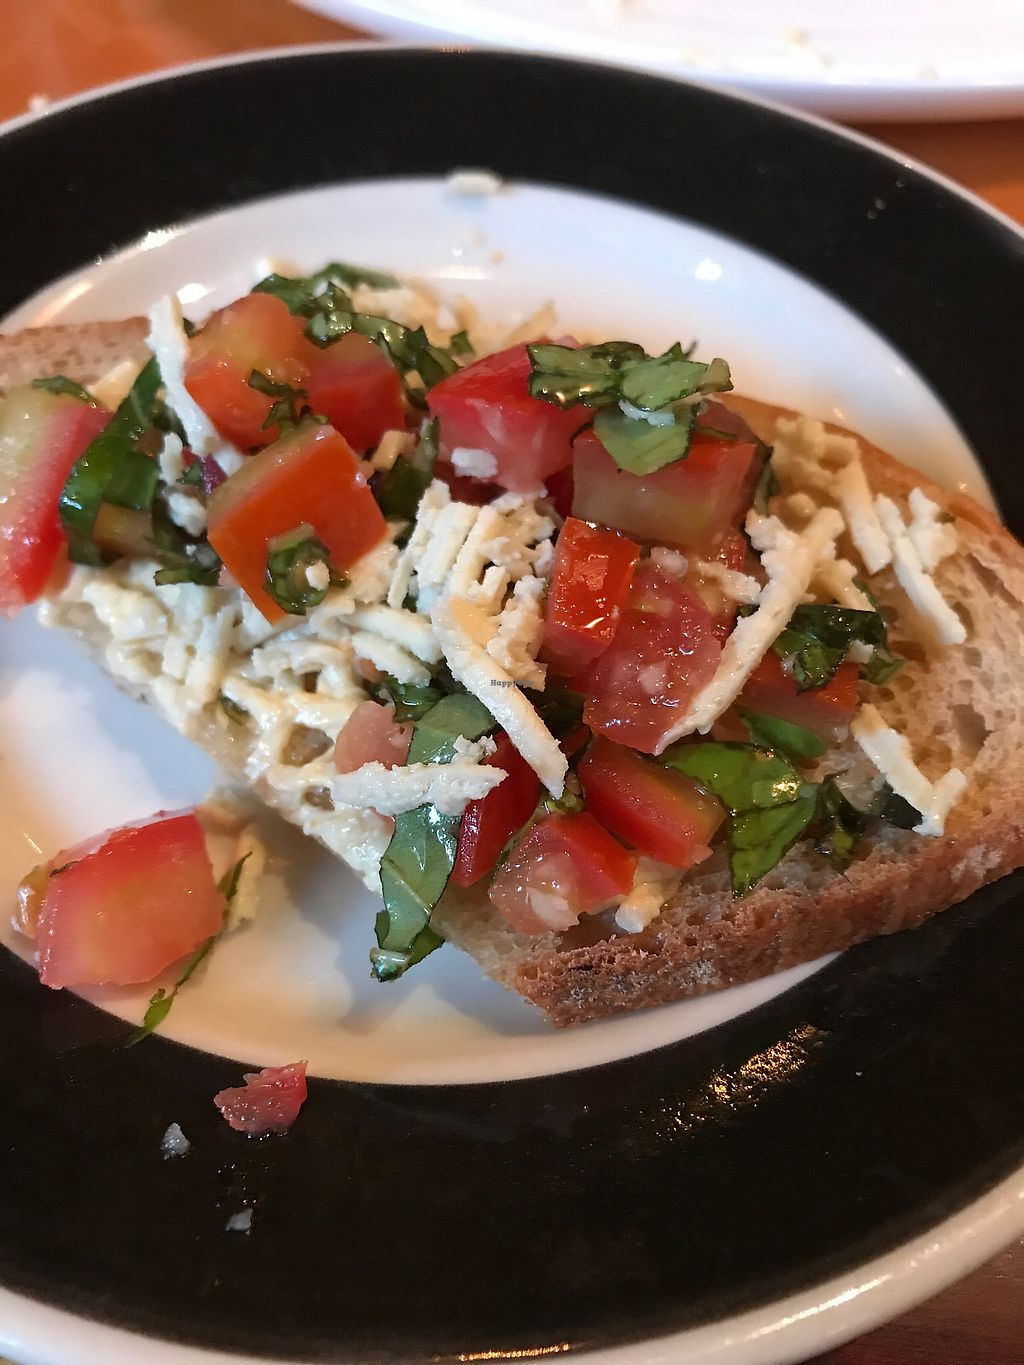 """Photo of Fitness Grill  by <a href=""""/members/profile/sjberrest"""">sjberrest</a> <br/>Vegan Bruschetta  <br/> July 1, 2017  - <a href='/contact/abuse/image/60466/275424'>Report</a>"""